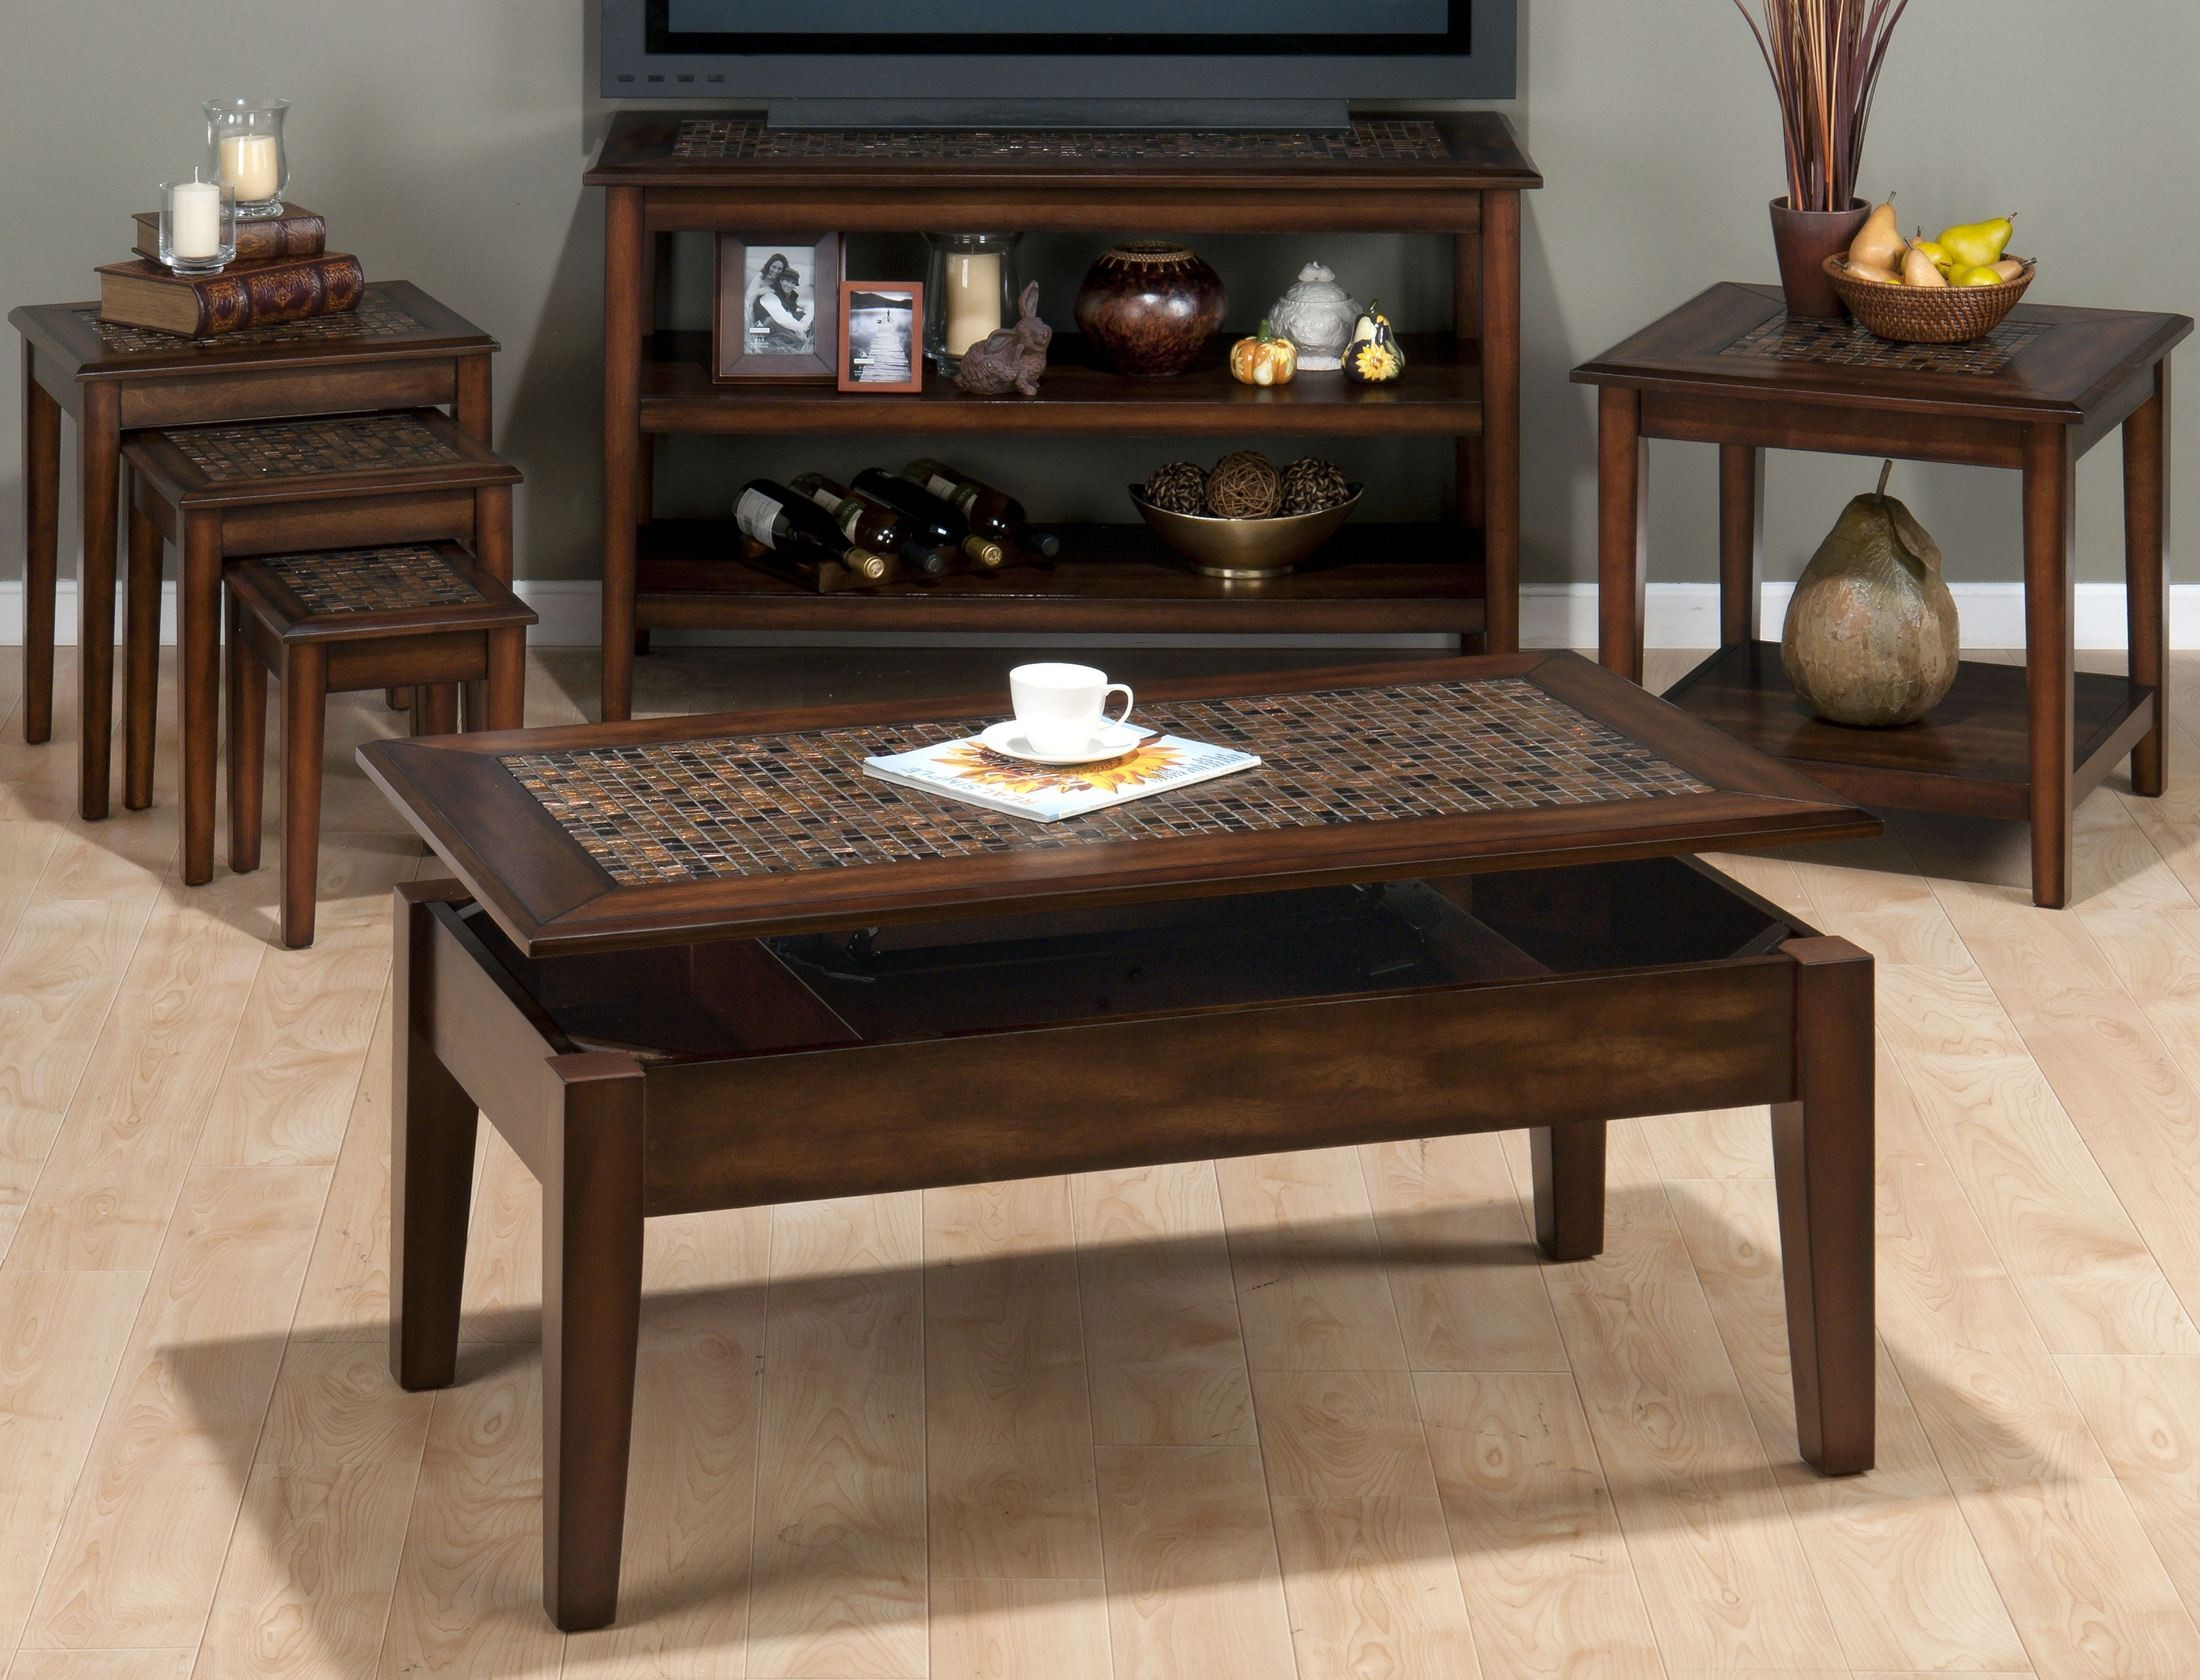 jofran baroque brown mosaic tile inlay lift top cocktail table occ showing accent media gallery vintage metal small battery operated lamps round iron coffee carpet trim dining